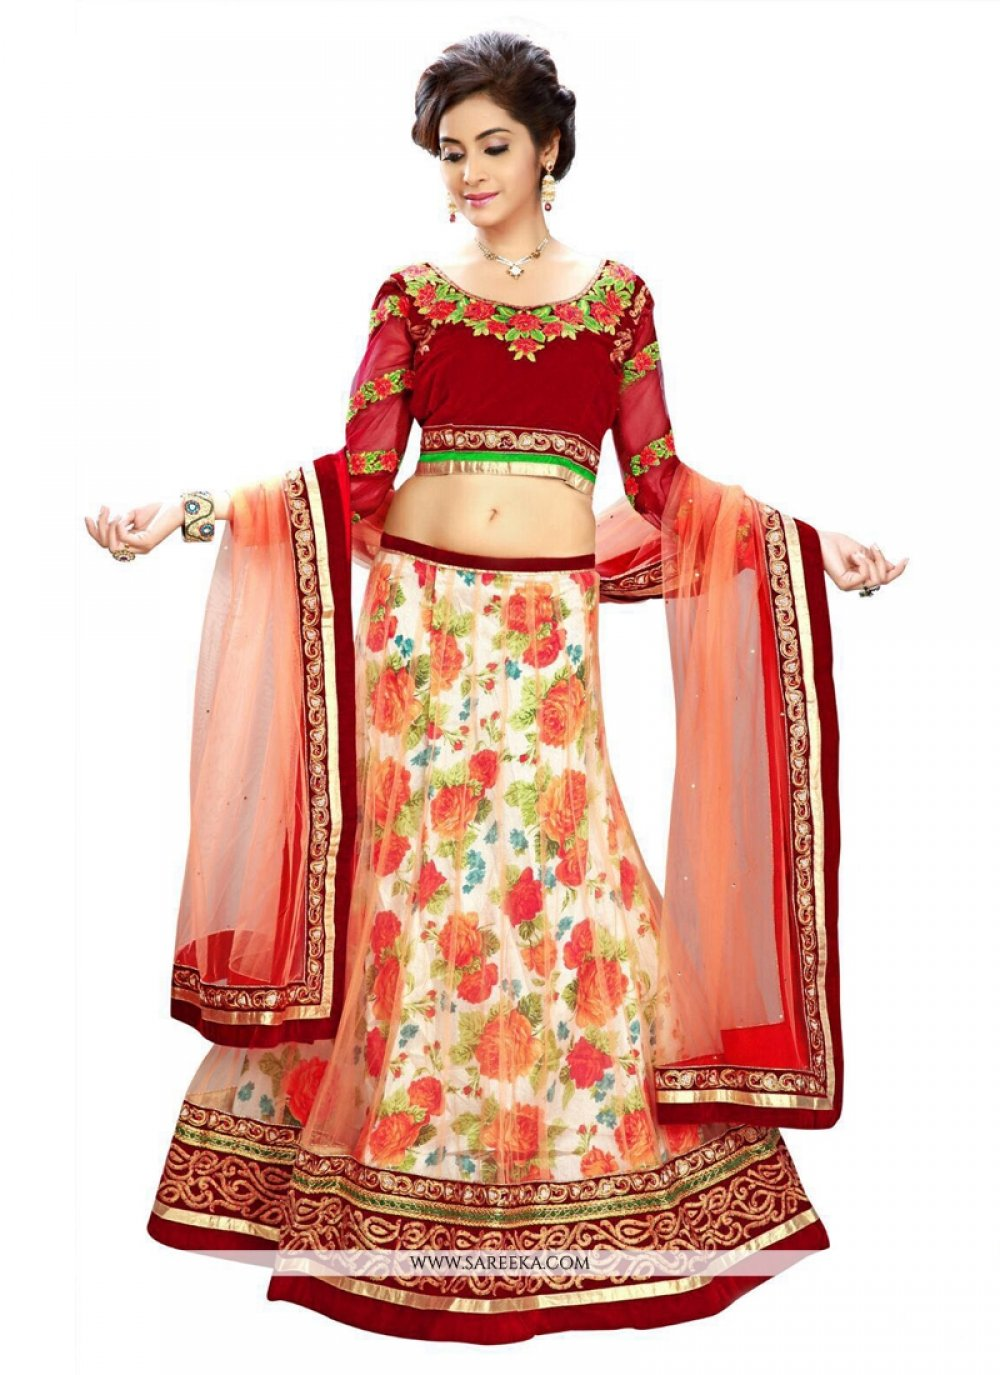 Red Aari Work Net A Line Lehenga Choli